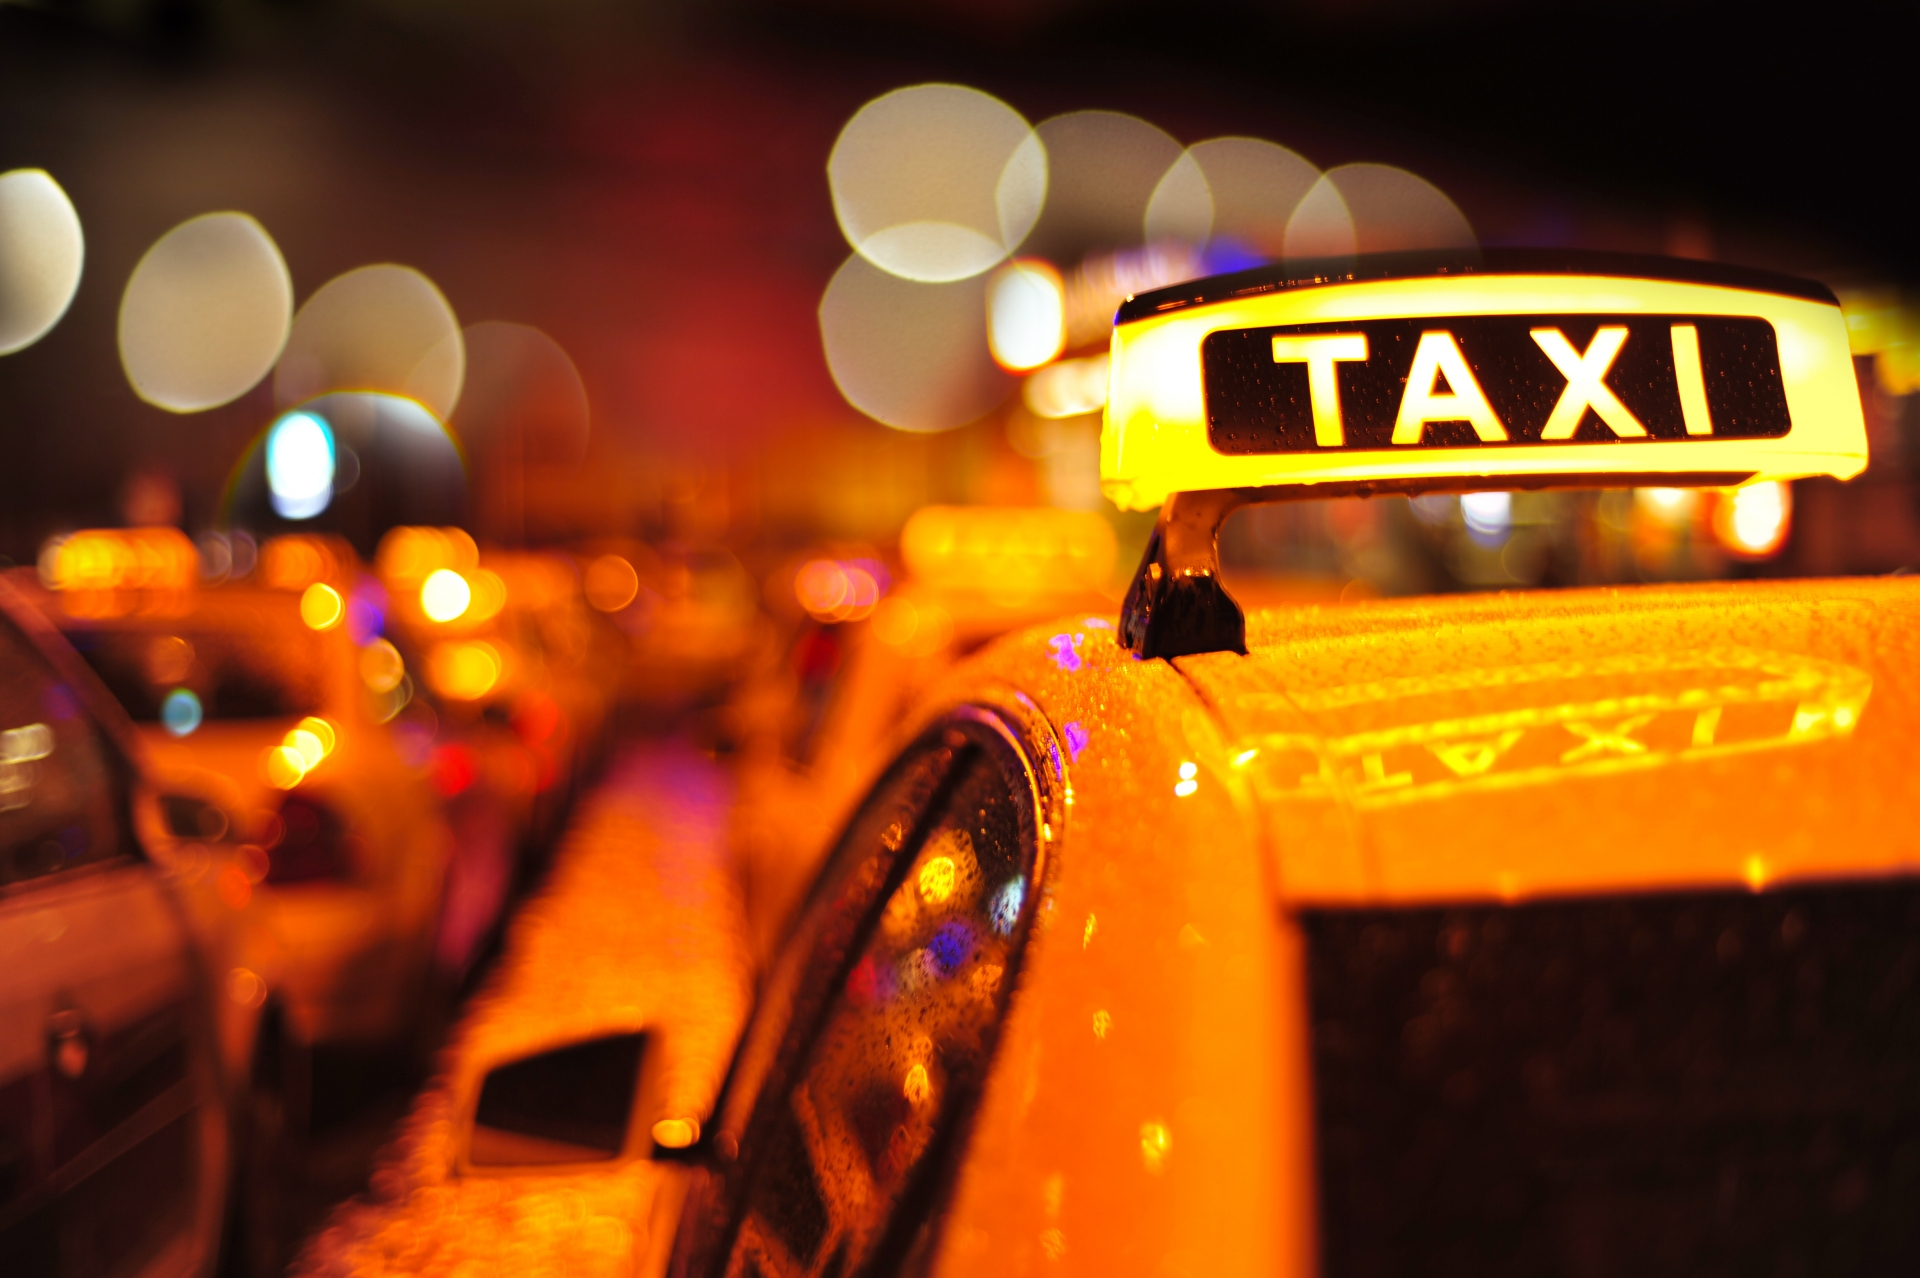 Stad taxi